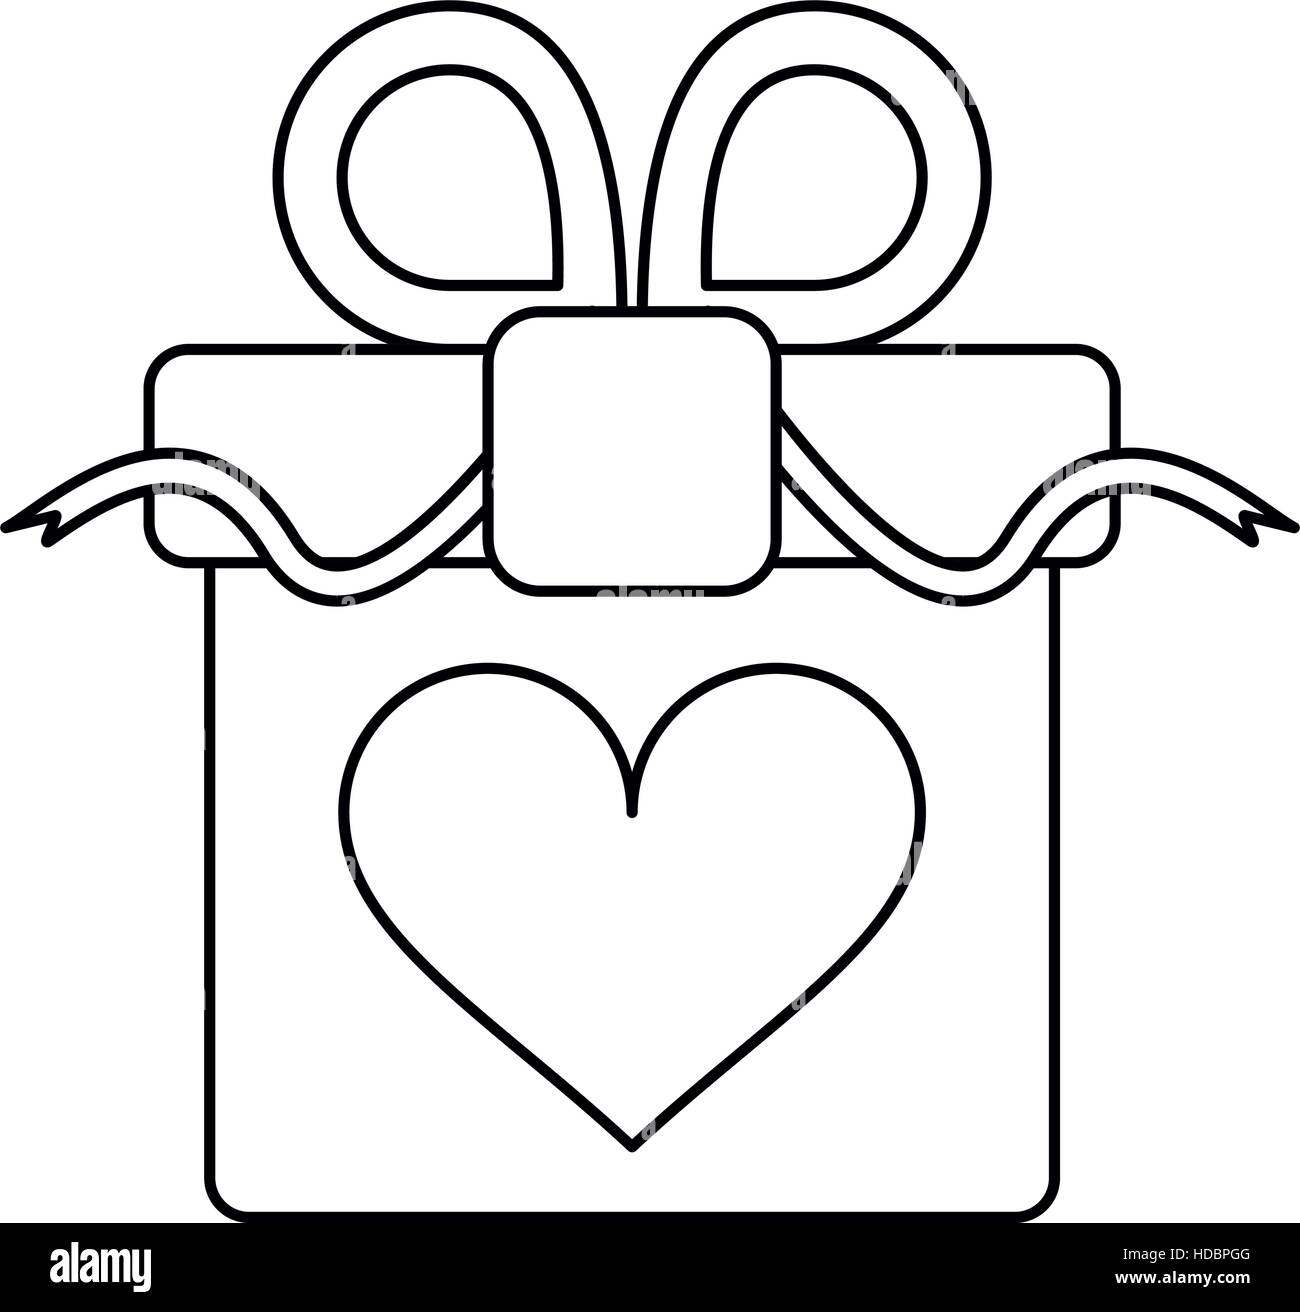 gift box with heart and bow outline stock vector art illustration Heart Diagram Nodes gift box with heart and bow outline